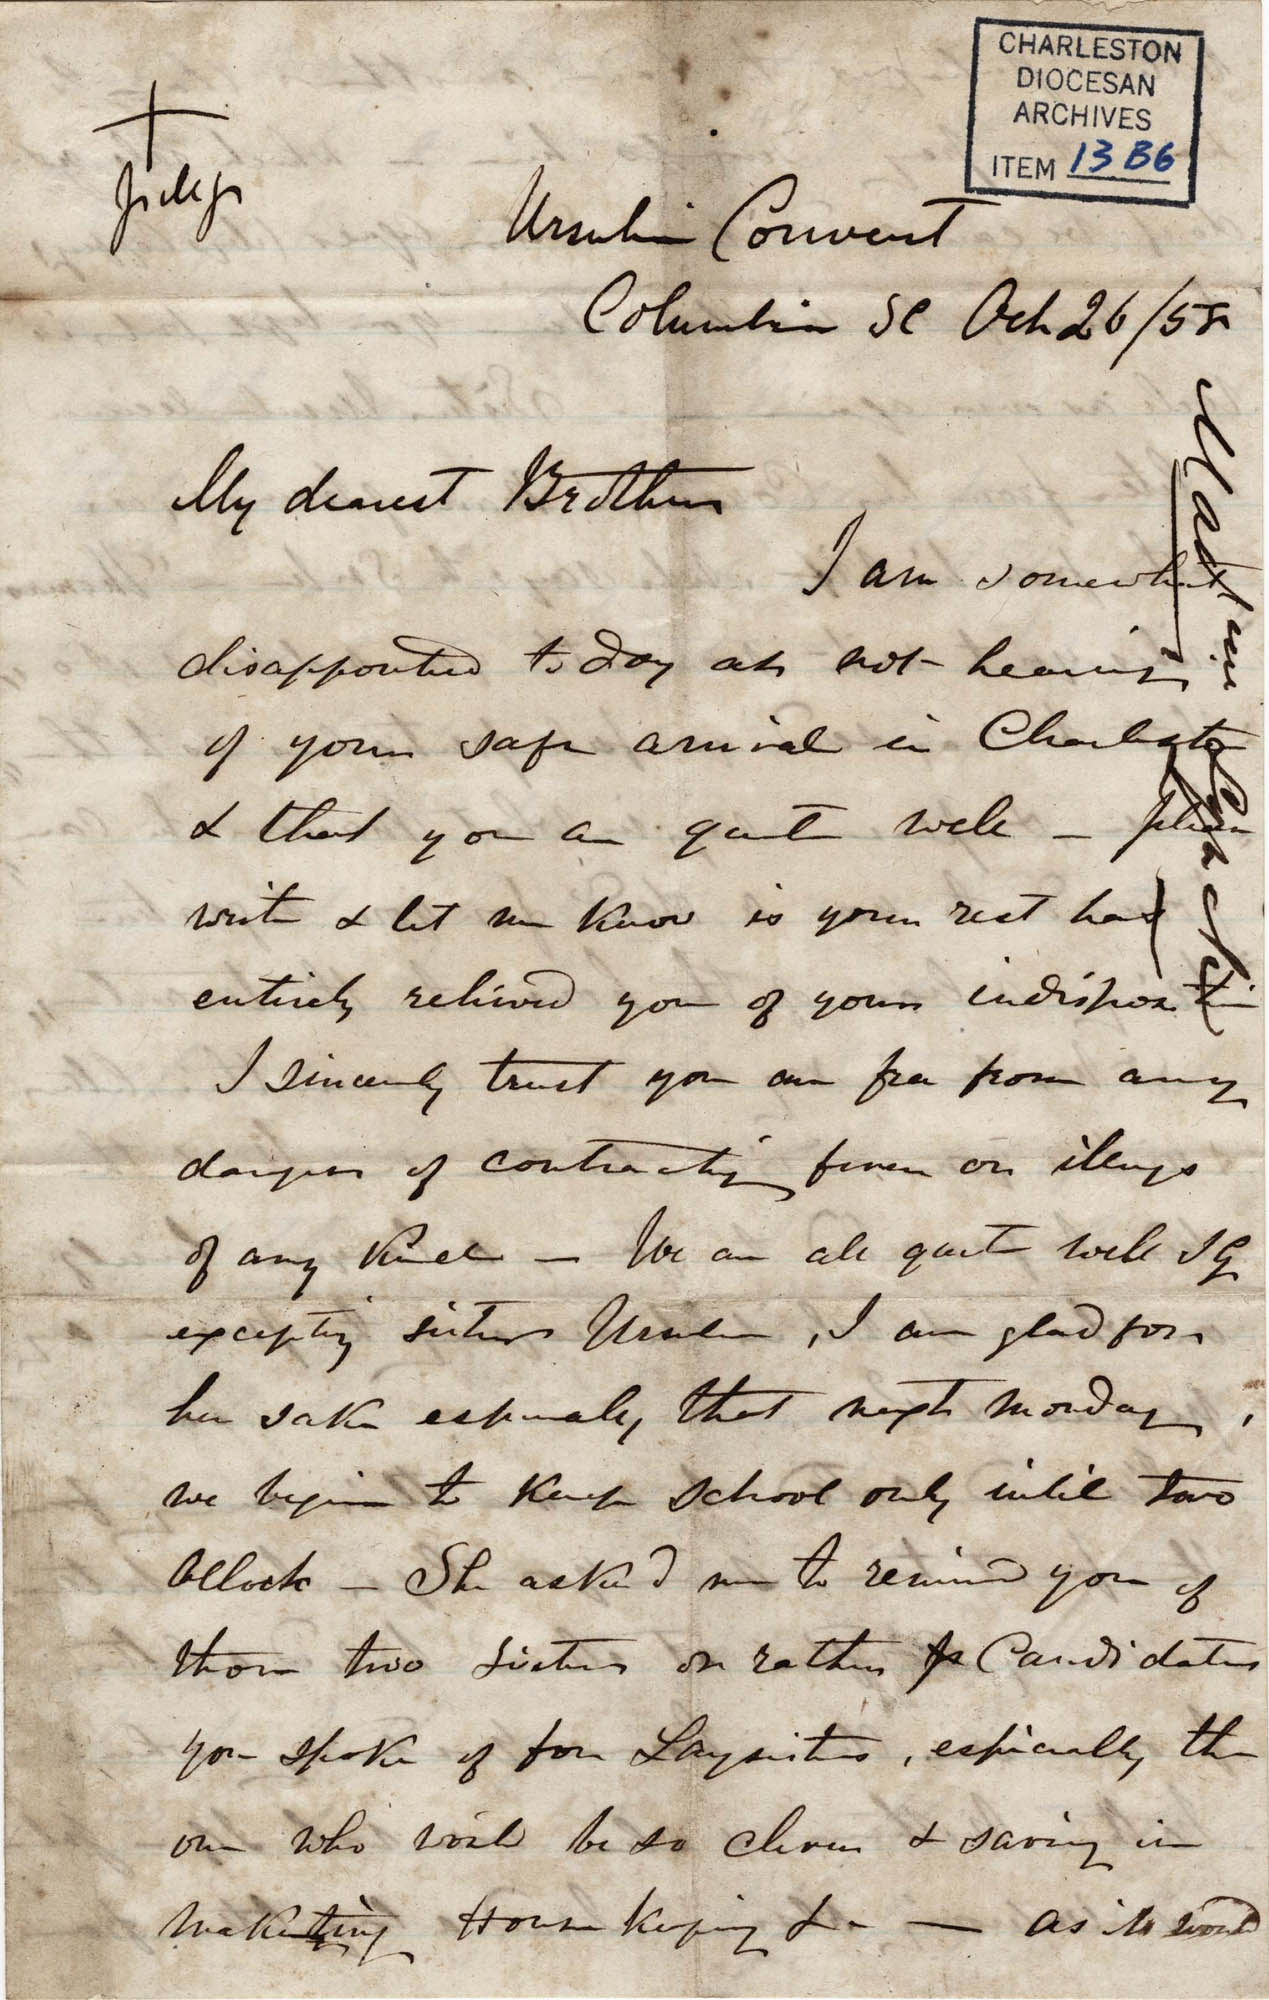 017. Madame Baptiste to Bp Patrick Lynch -- October 26, 1858